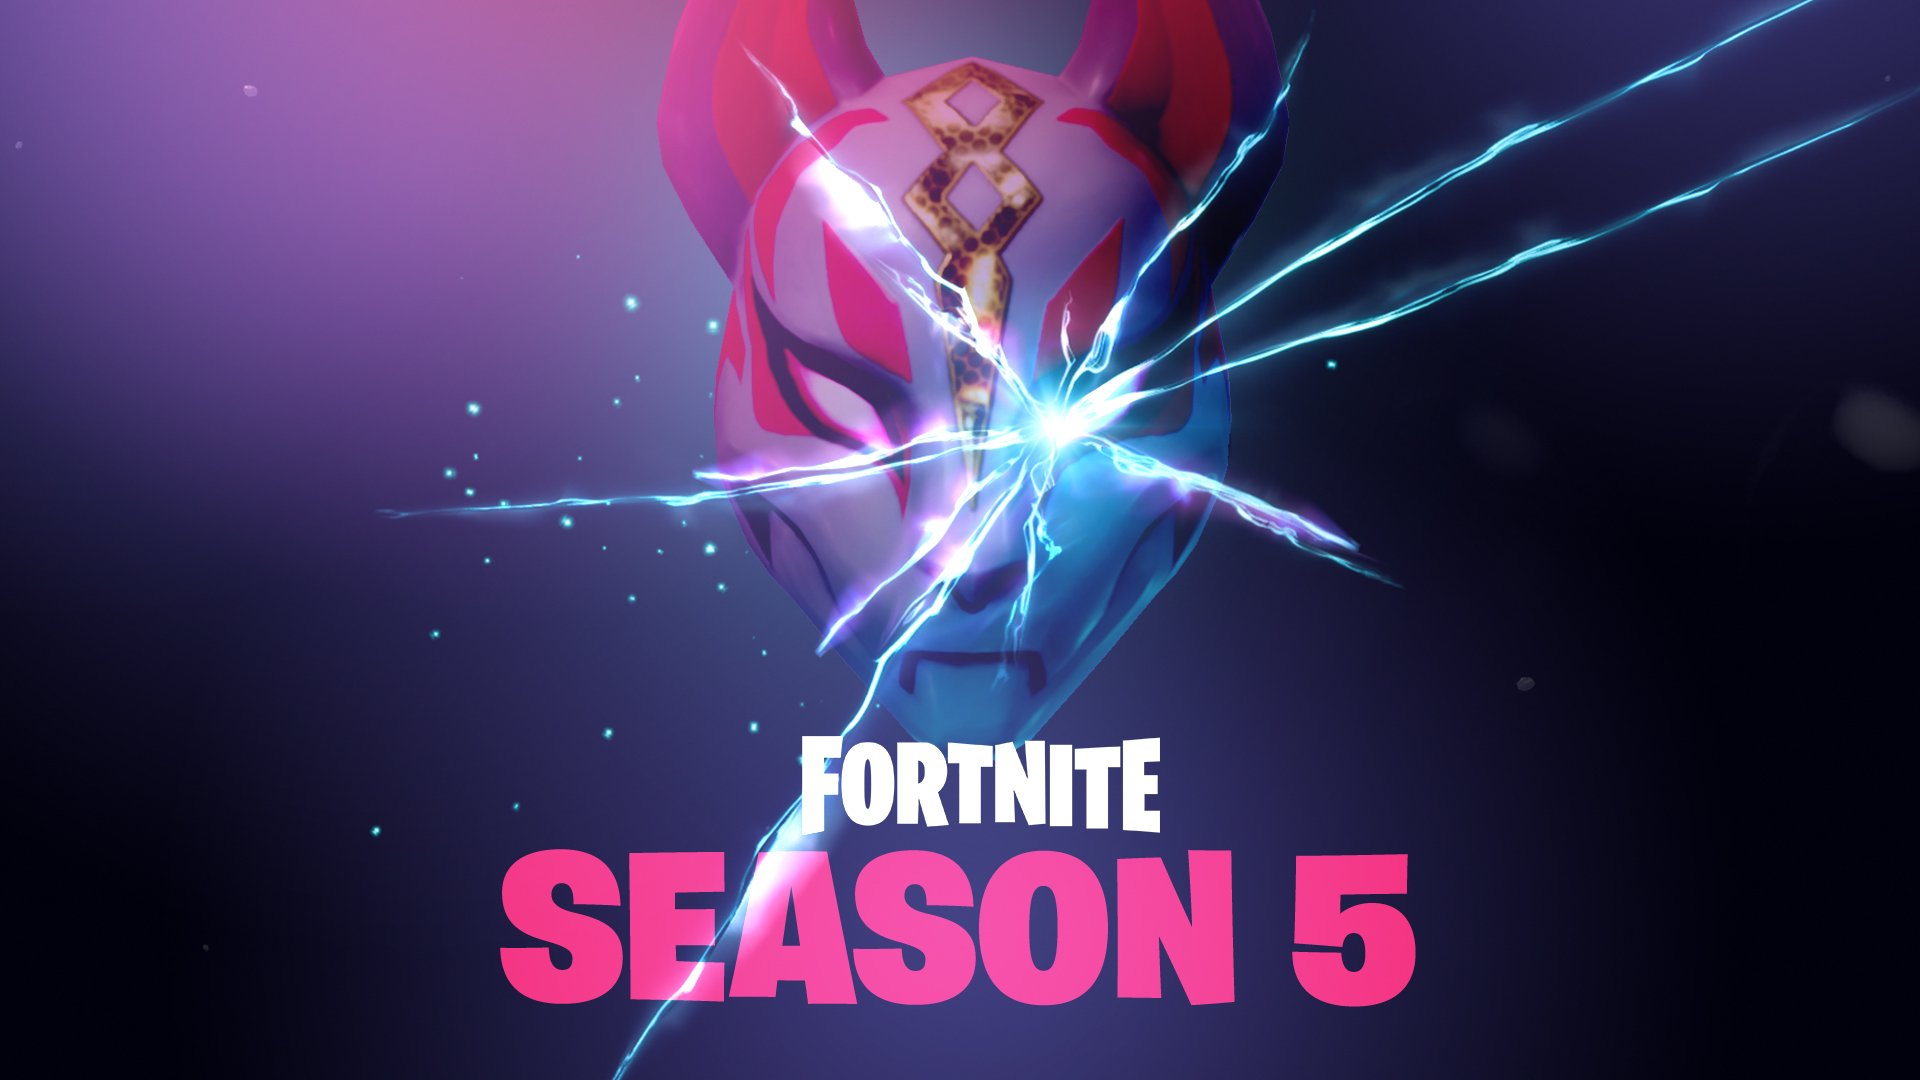 Fortnite Season 5 Teaser